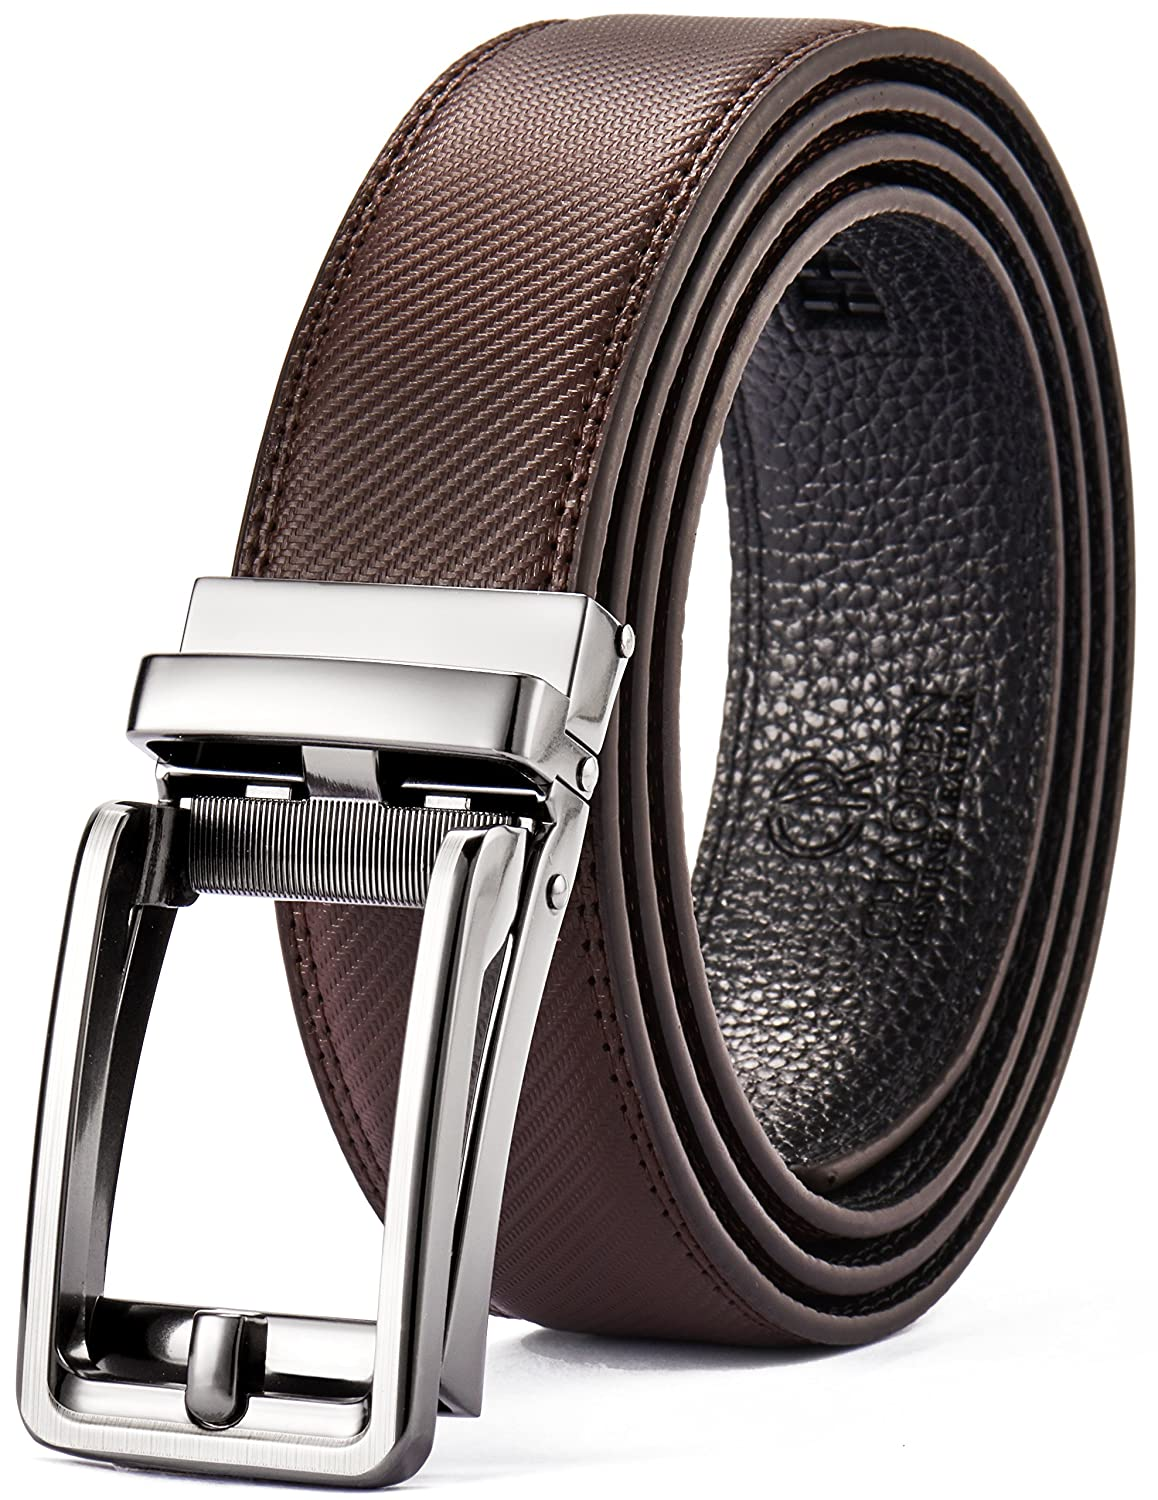 Men's Leather Ratchet Belt Dress with Slide Click Buckle – Trim to Exact Fit-Gift Box CHAOREN